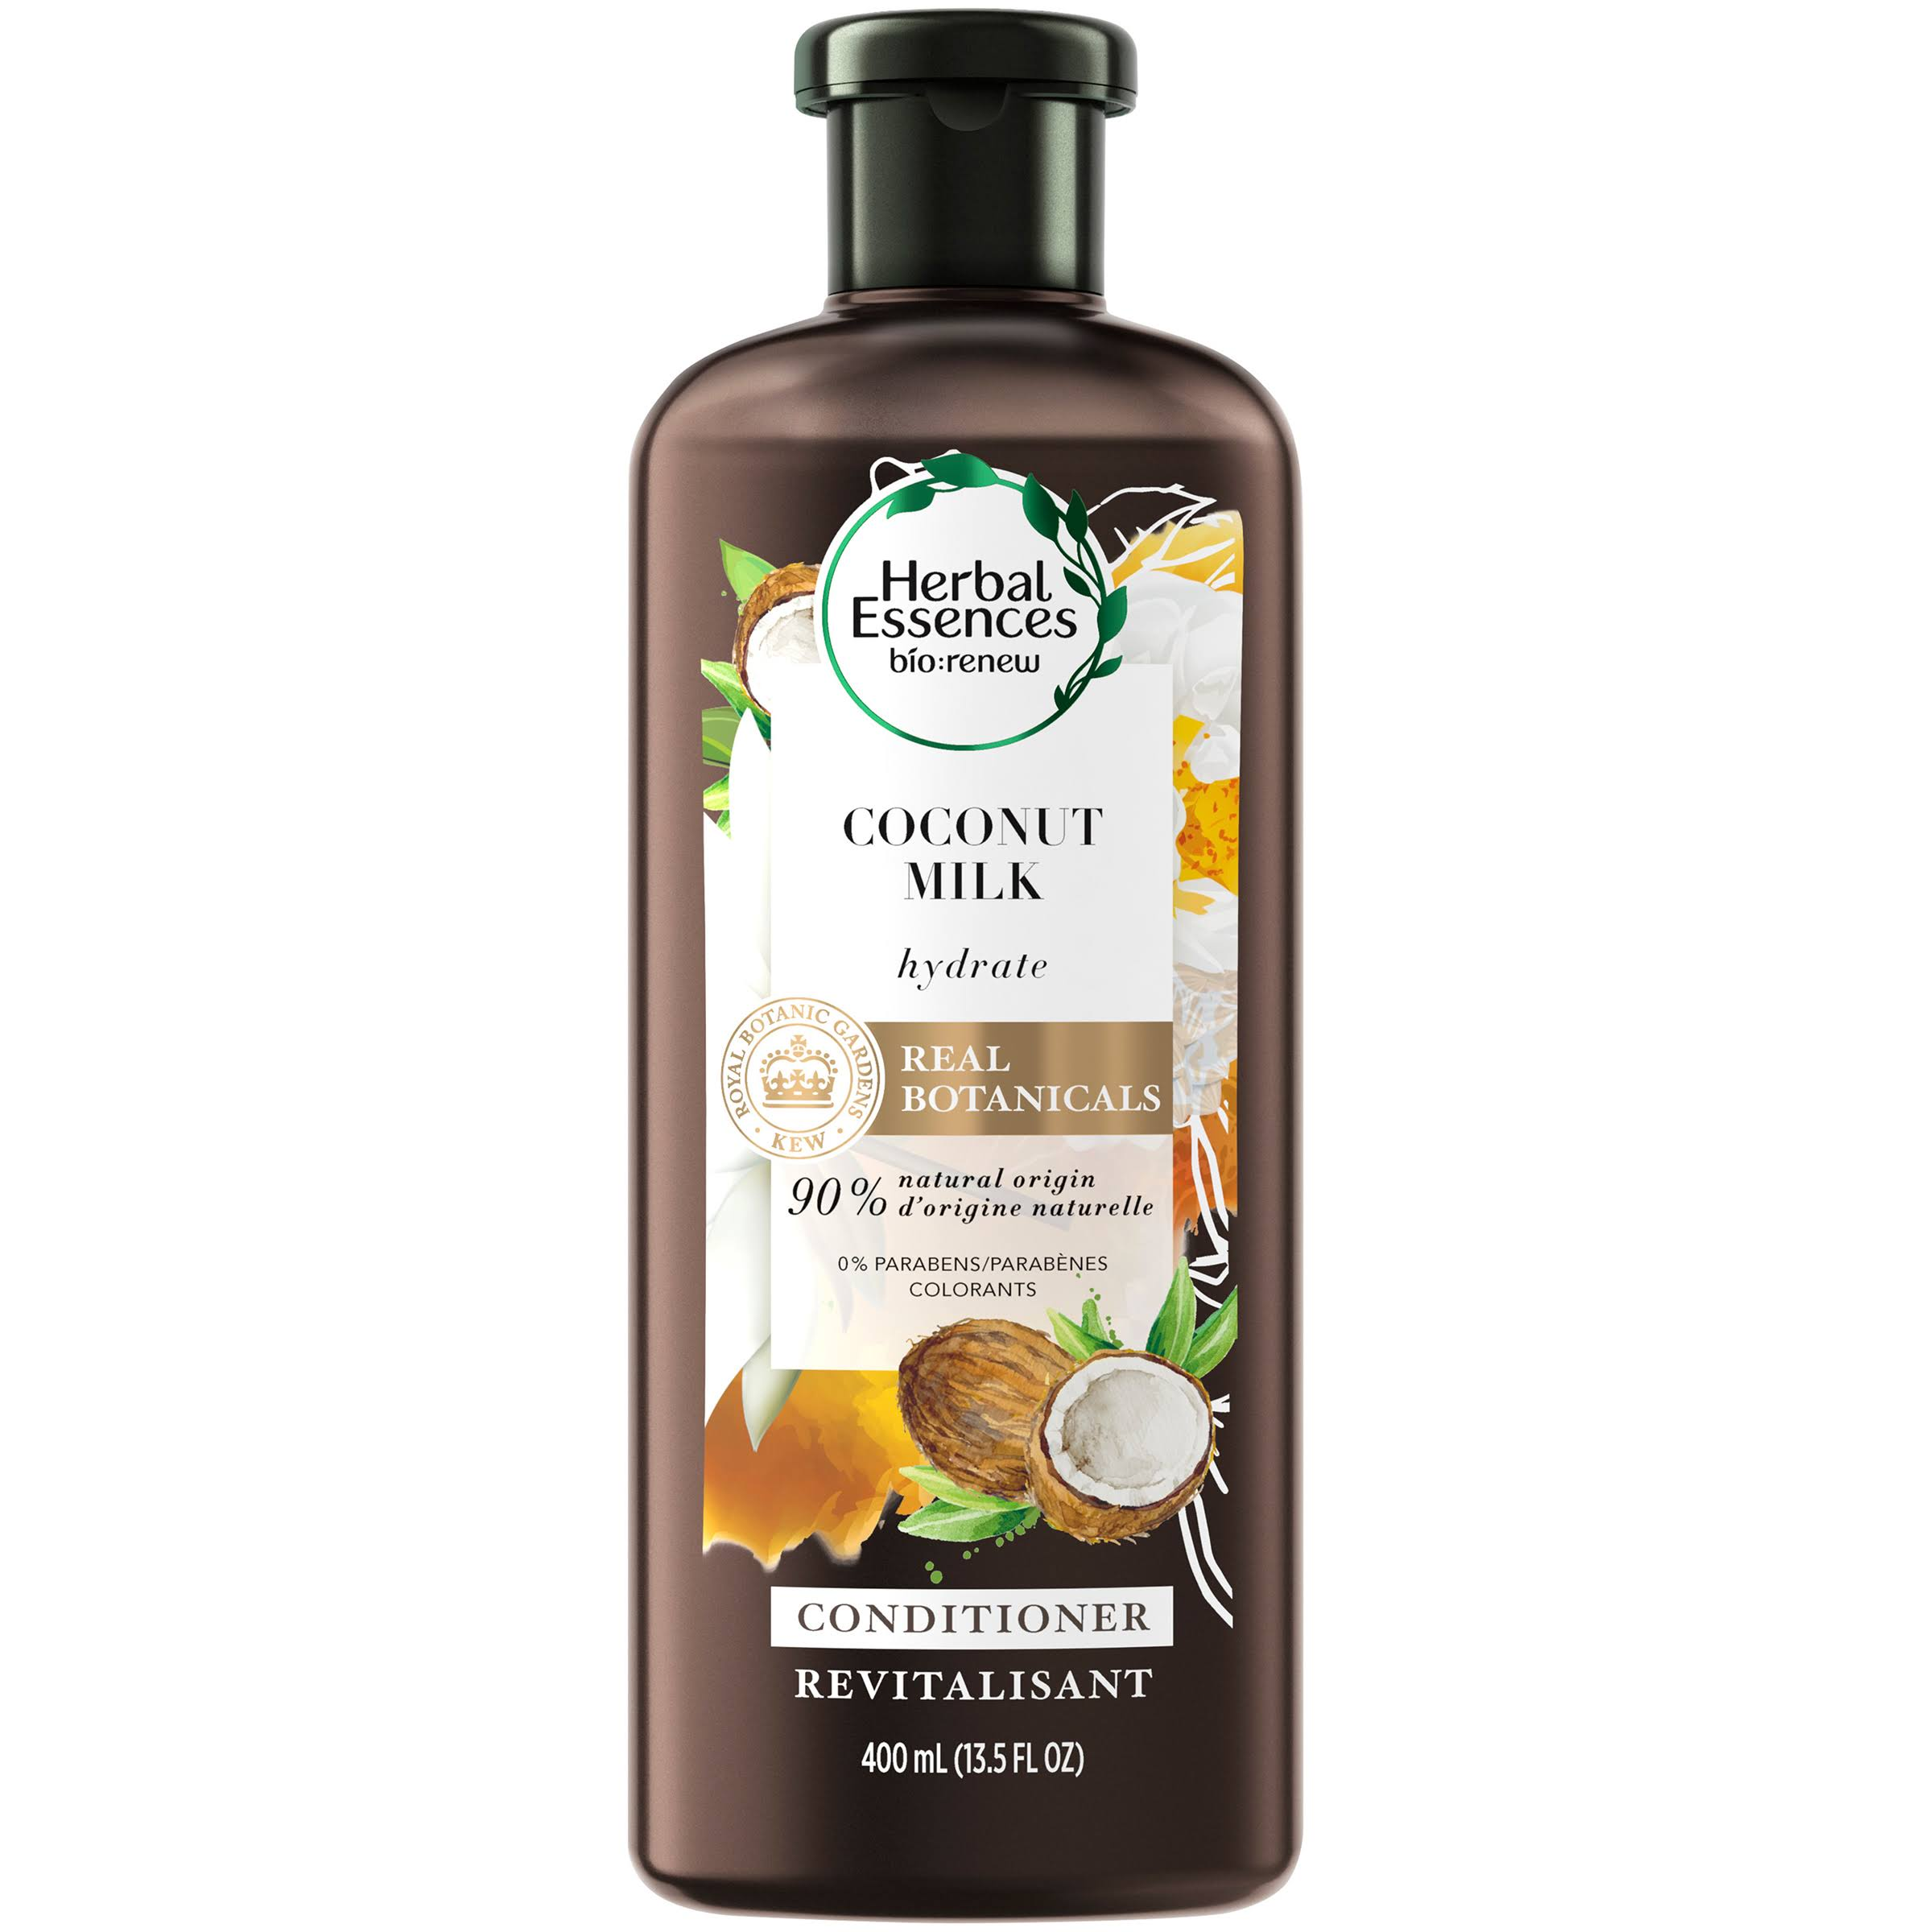 Herbal Essences Bio Rehydrate Conditioner - Coconut Milk, 13.5oz